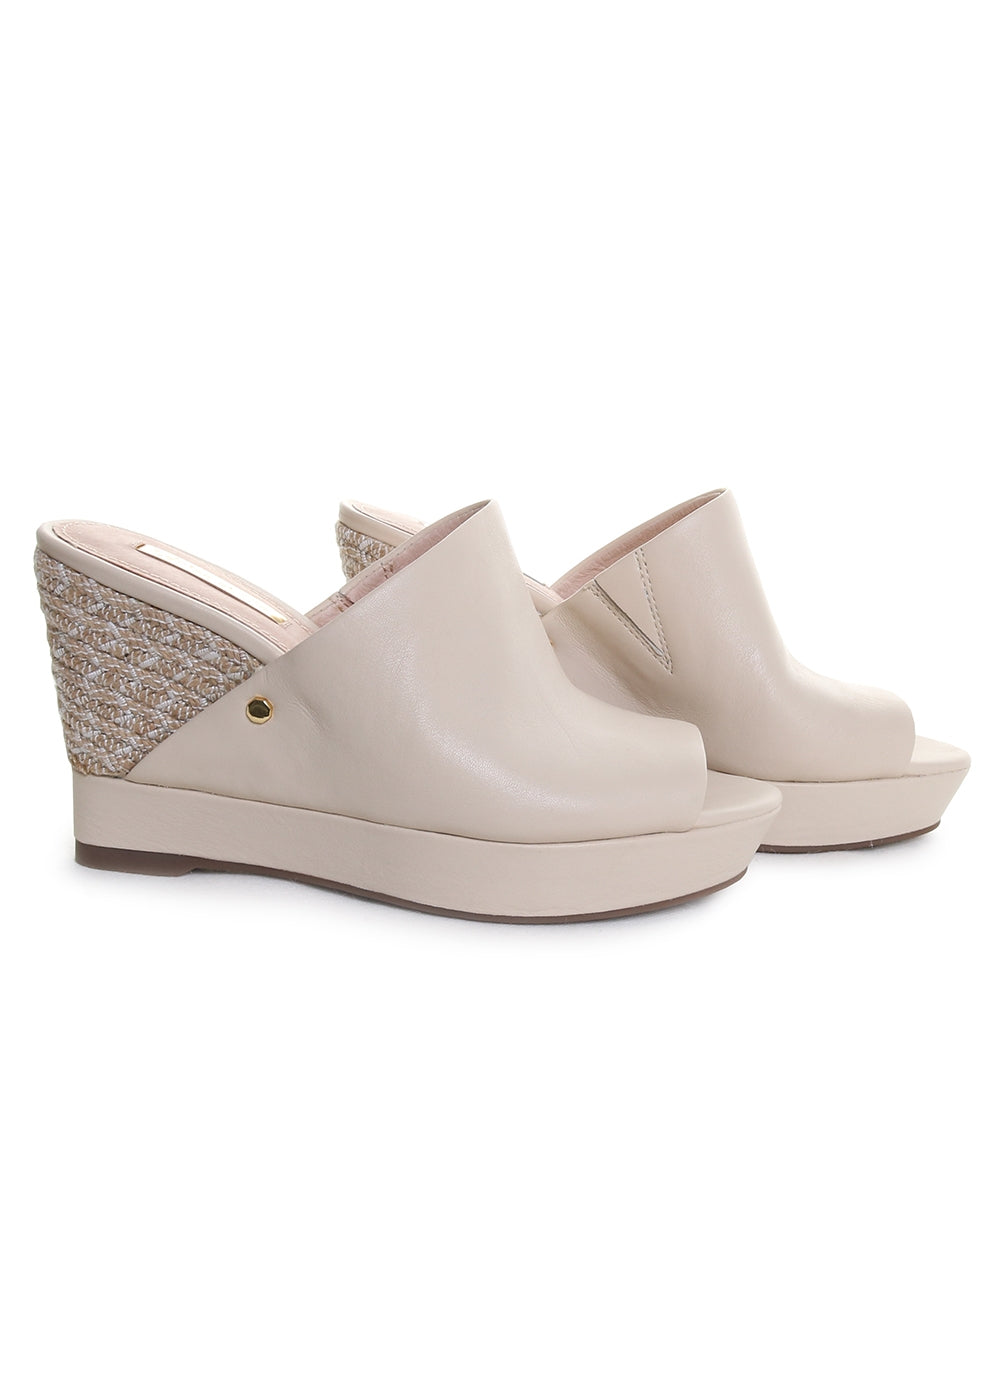 Louise Et Cie Ramsaye Wedge in Porcelain